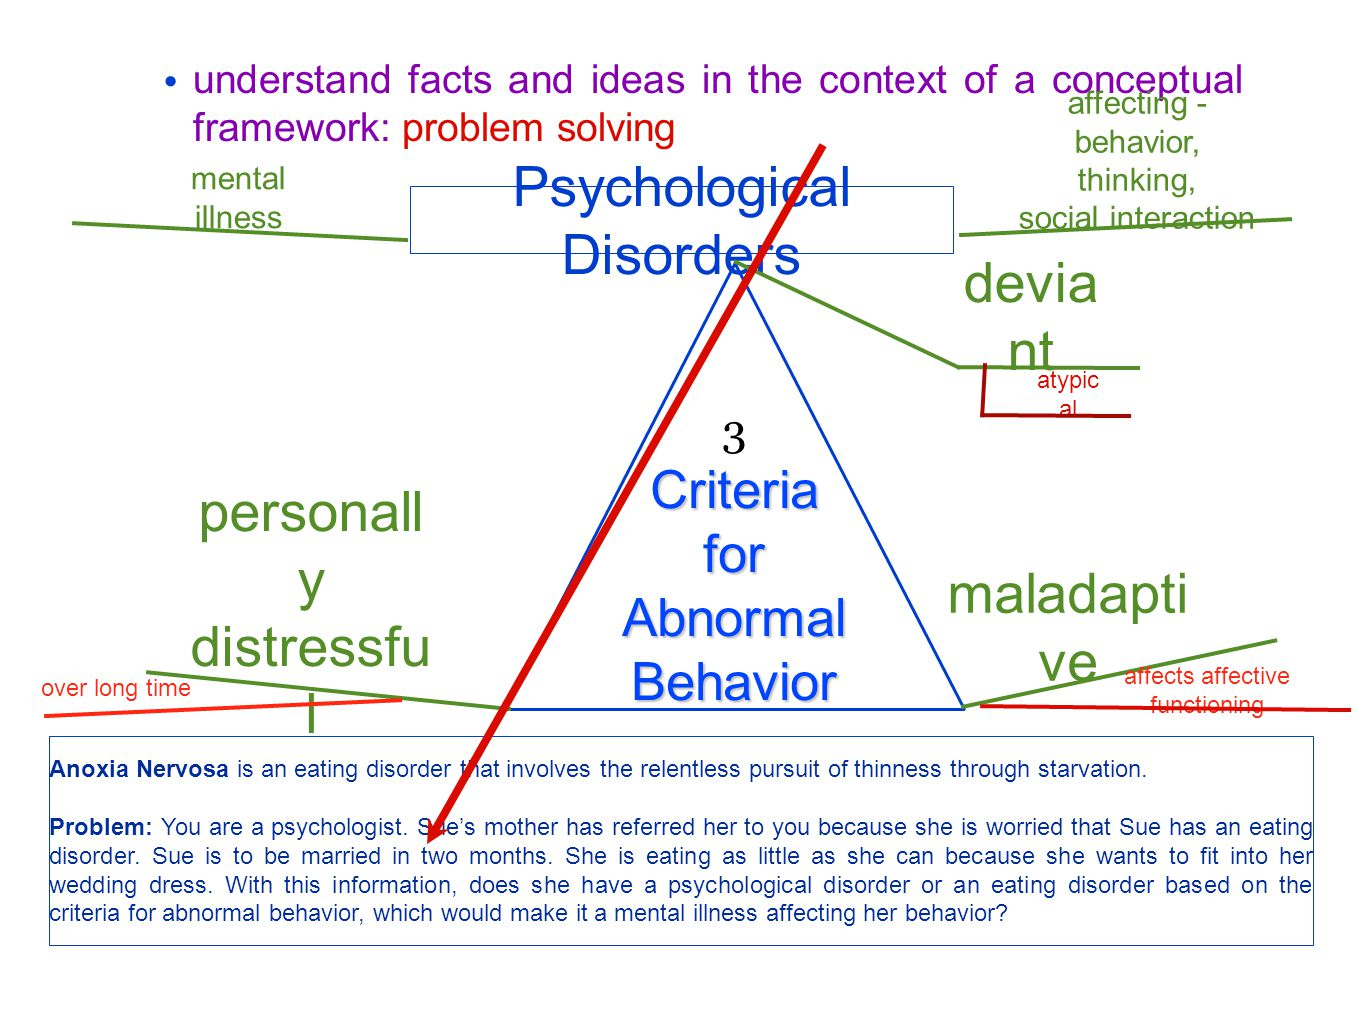 understand facts and ideas in the context of a conceptual framework: problem solving 3 Criteria for Abnormal Behavior Psychological Disorders devia nt maladapti ve personall y distressfu l atypic al mental illness affecting - behavior, thinking, social interaction Anoxia Nervosa is an eating disorder that involves the relentless pursuit of thinness through starvation.